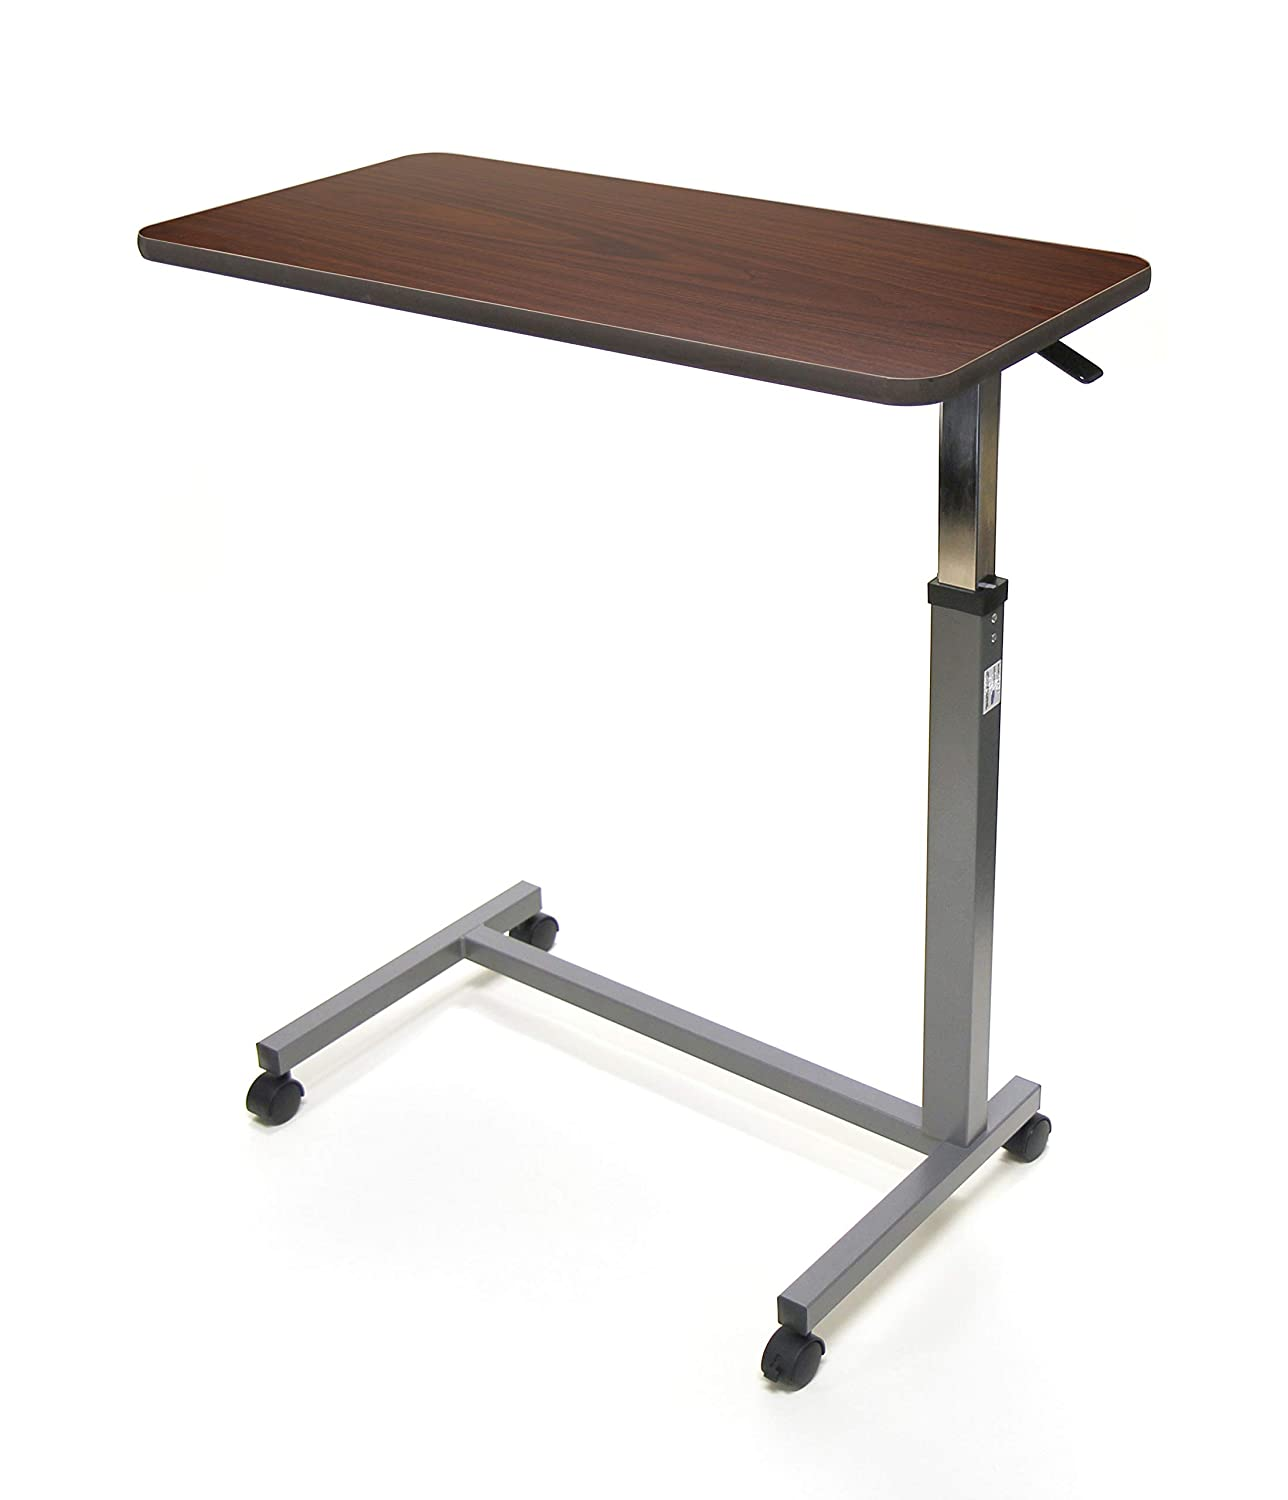 Invacare Overbed Table, with Auto-Touch Height Adjustment, 6417